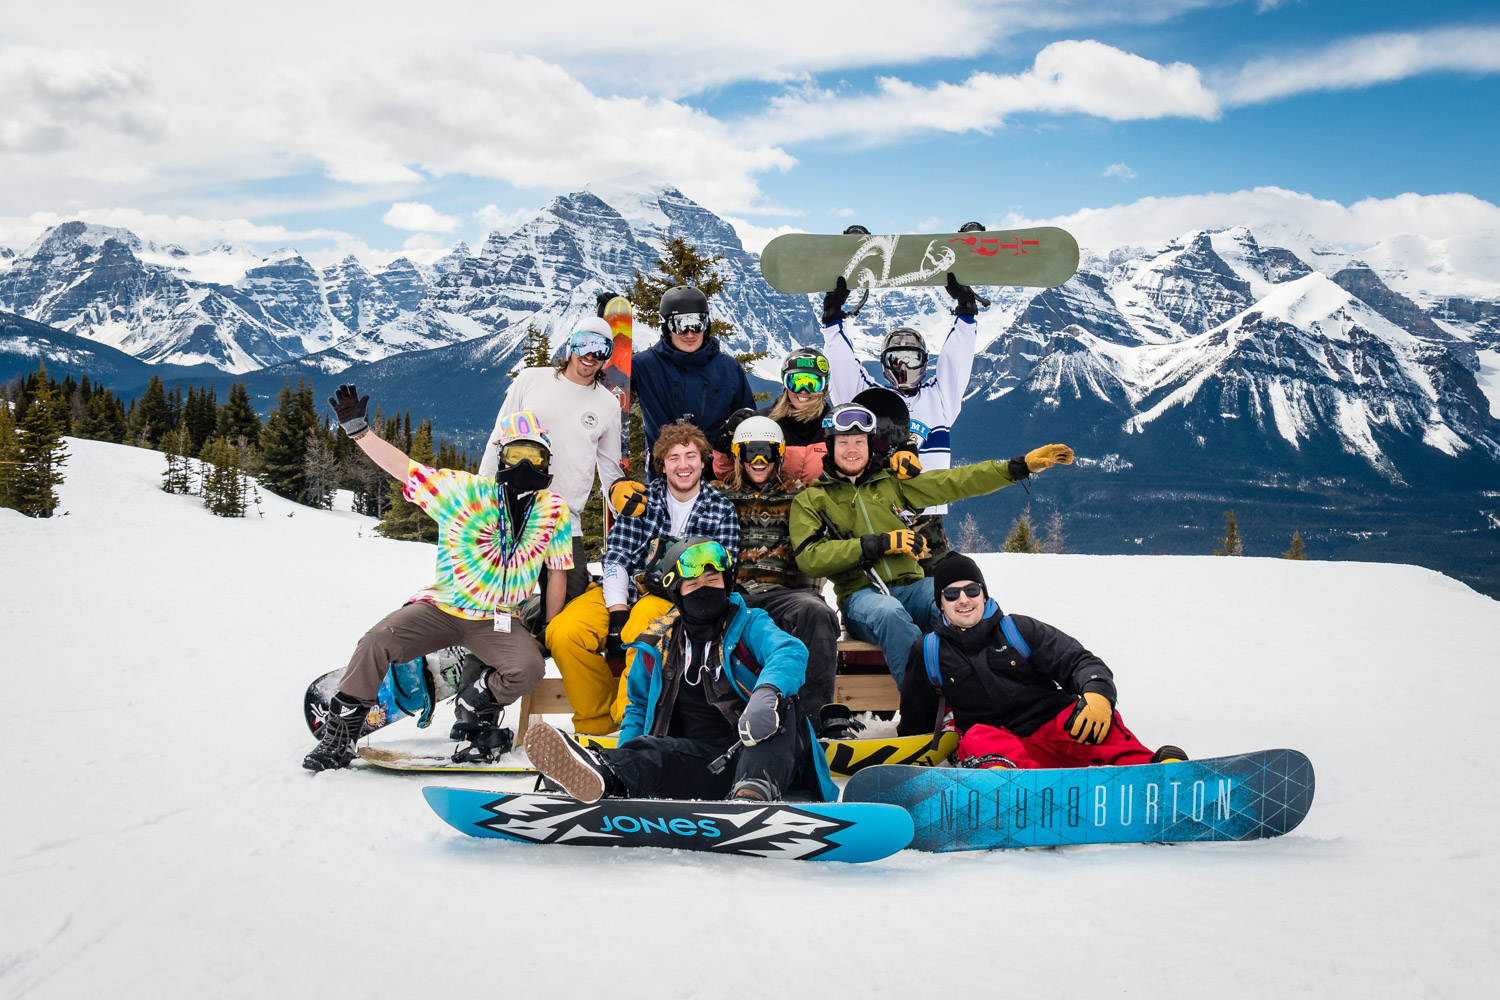 And then back to this troublesome bunch. This was the final day of snowboarding.